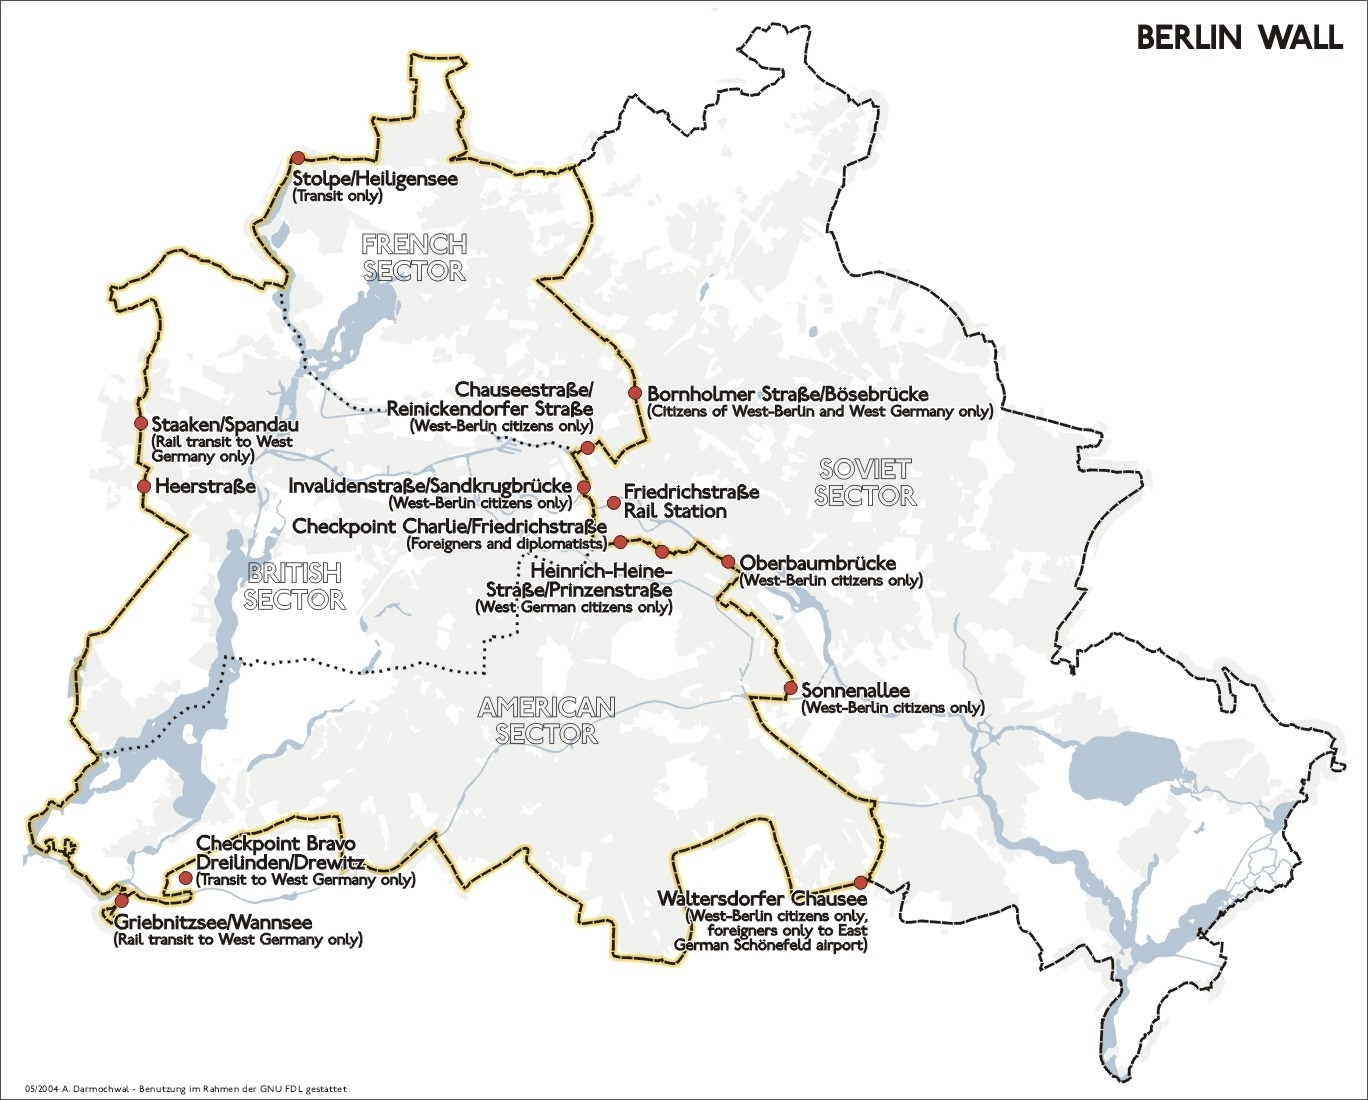 Map Of Berlin Wall Location within East West Germany Map Berlin Wall